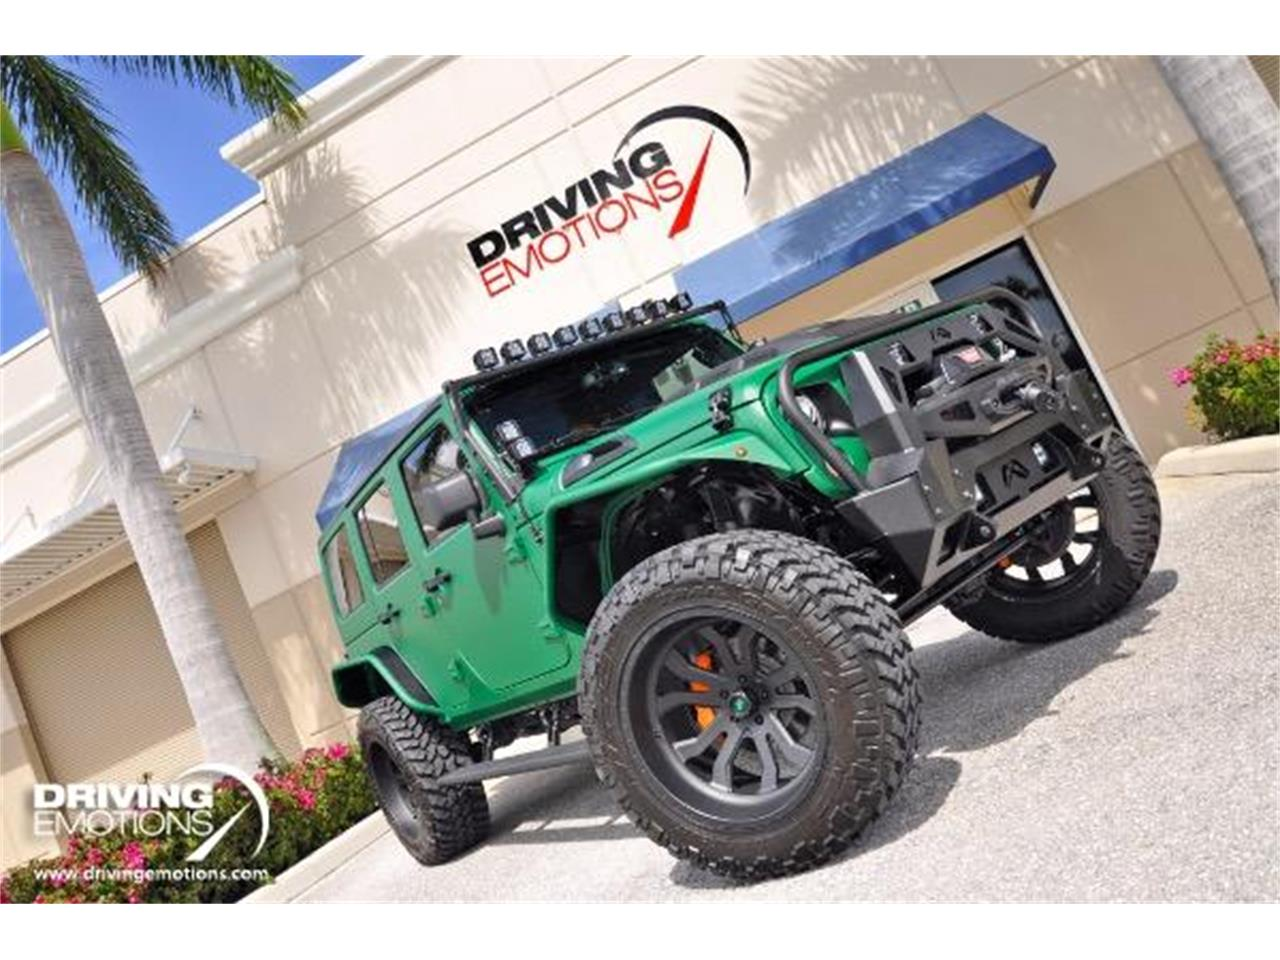 2018 Jeep Wrangler (CC-1247650) for sale in West Palm Beach, Florida